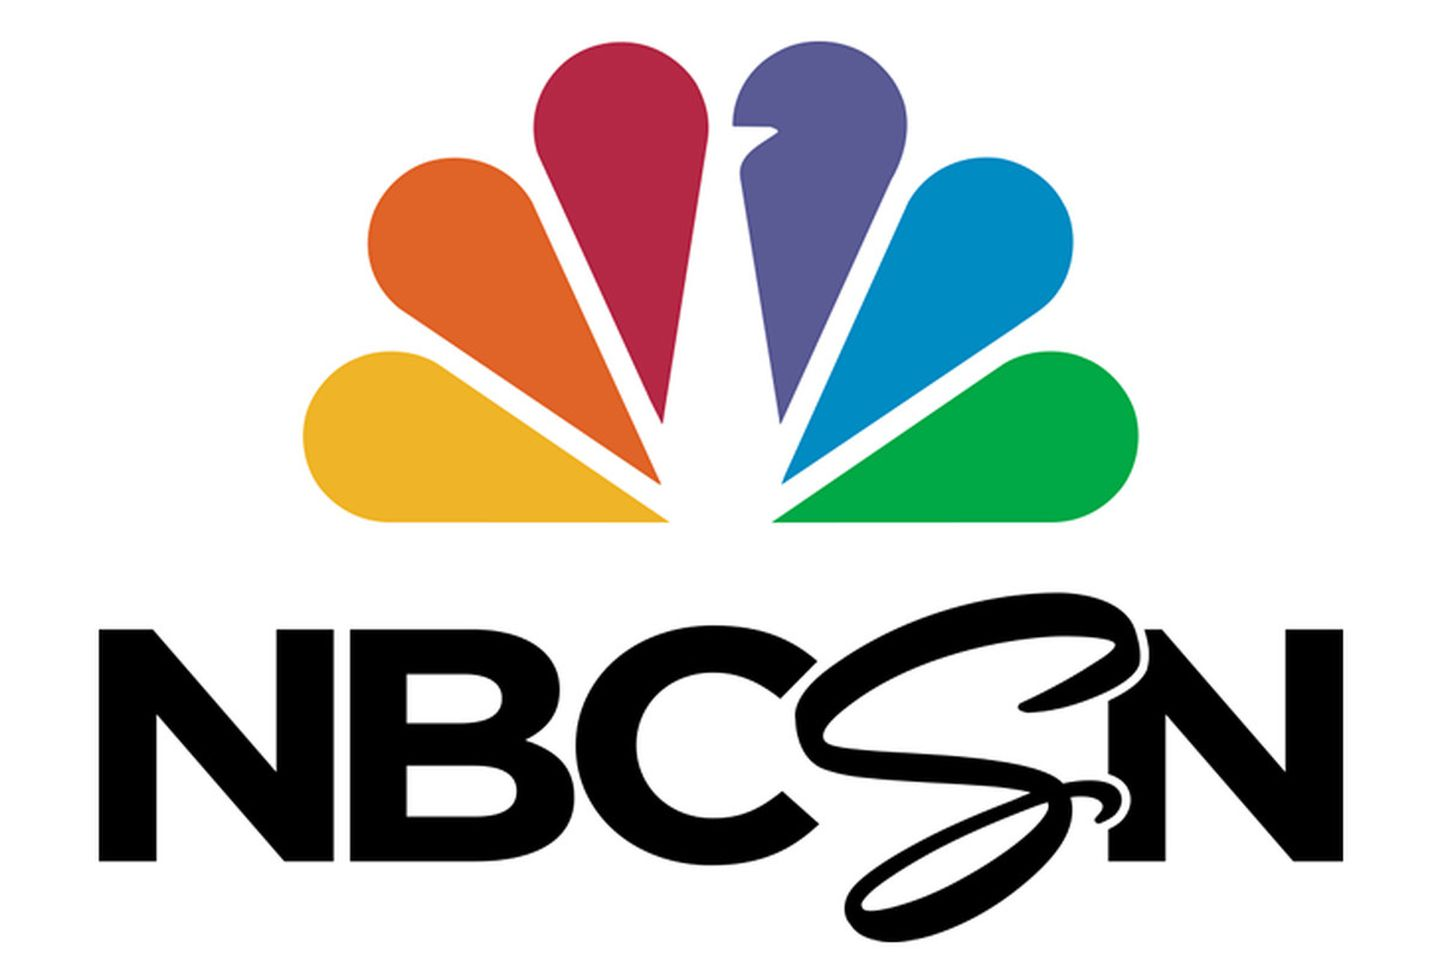 NBC will shut down NBC Sports Network by the end of 2021 - The Boston Globe